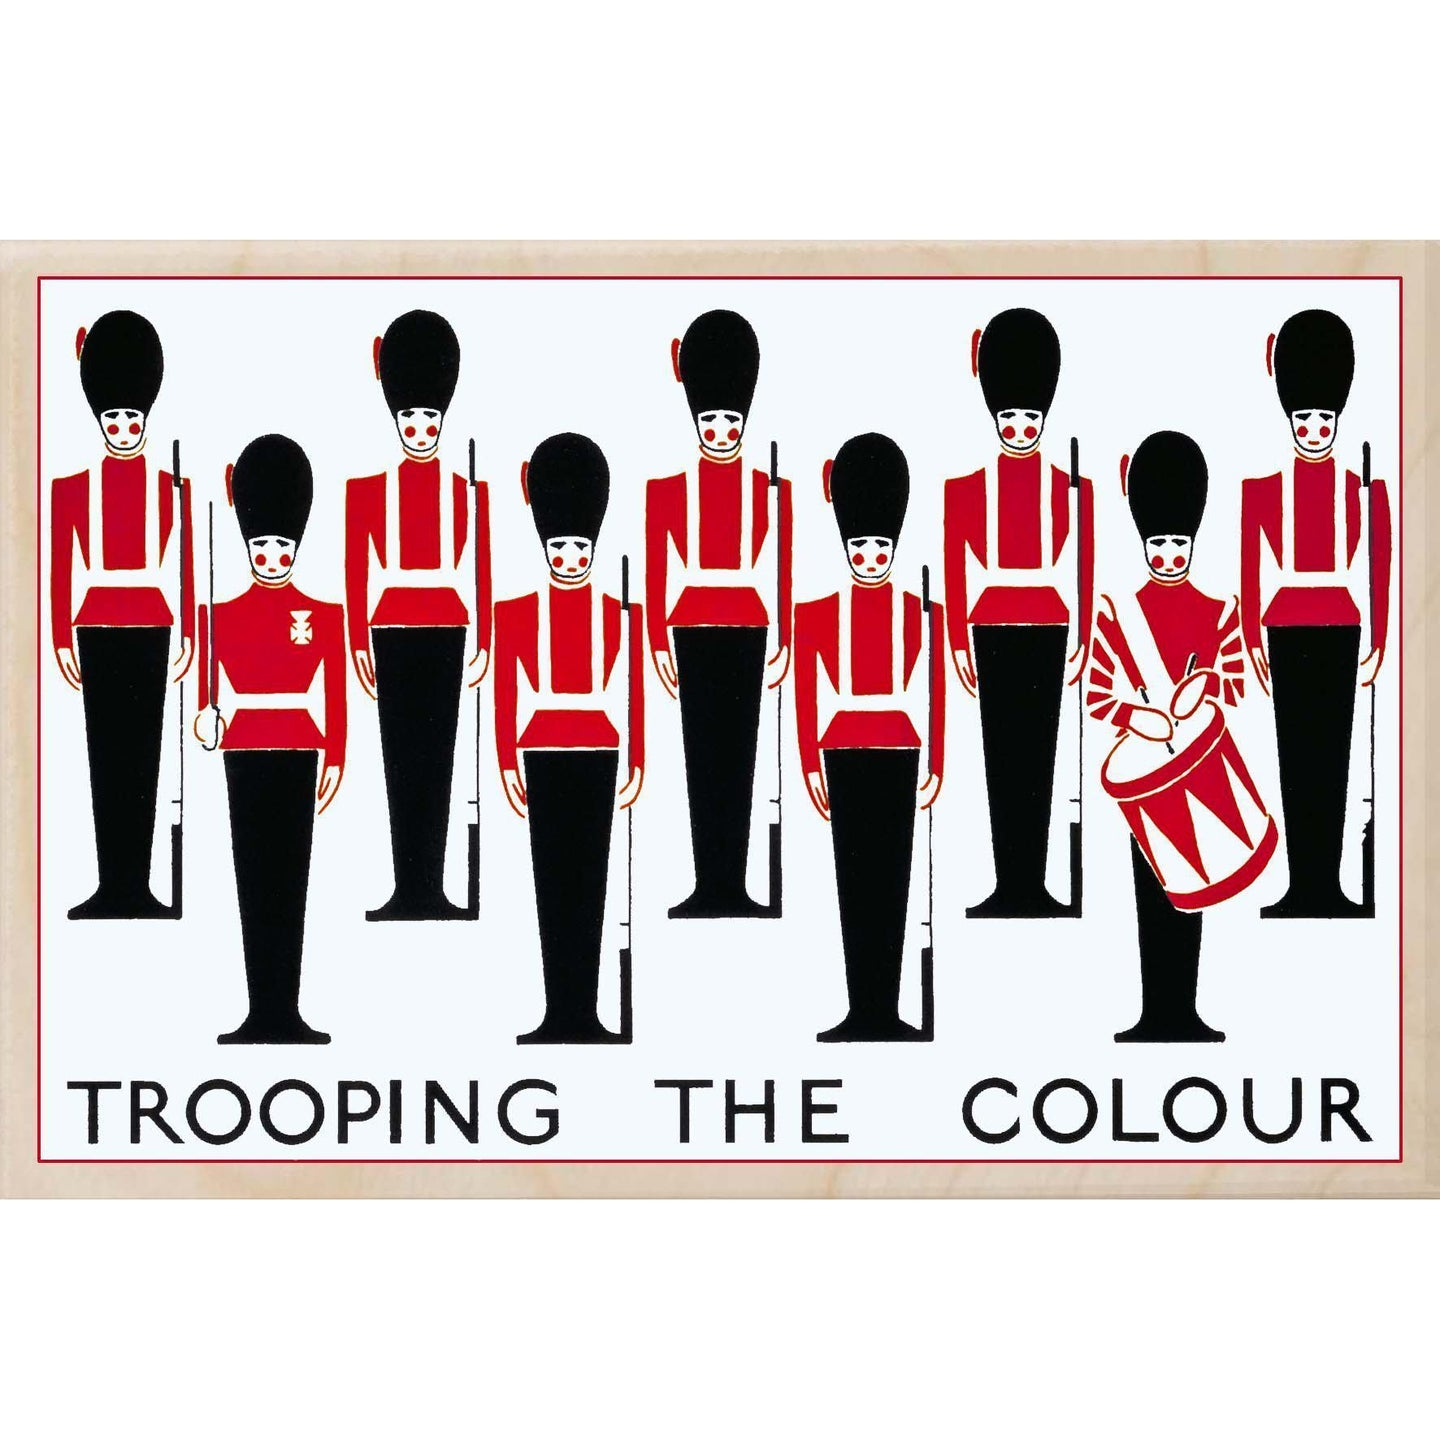 TROOPING THE COLOUR 1923-[wooden_postcard]-[london_transport_museum]-[original_illustration]THE WOODEN POSTCARD COMPANY